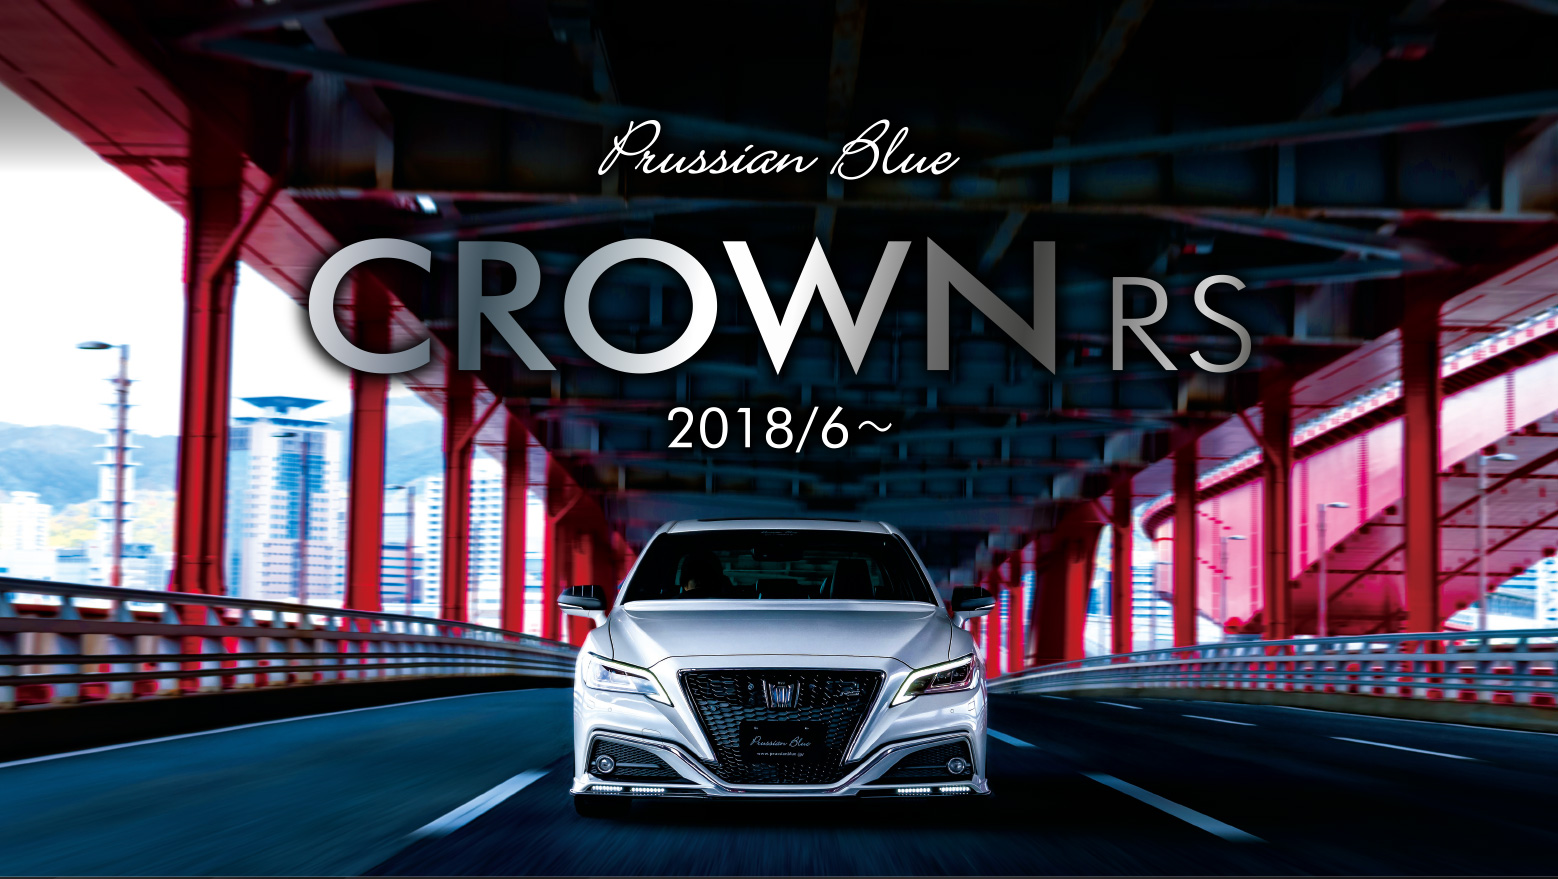 CROWN RS Prussian Blue